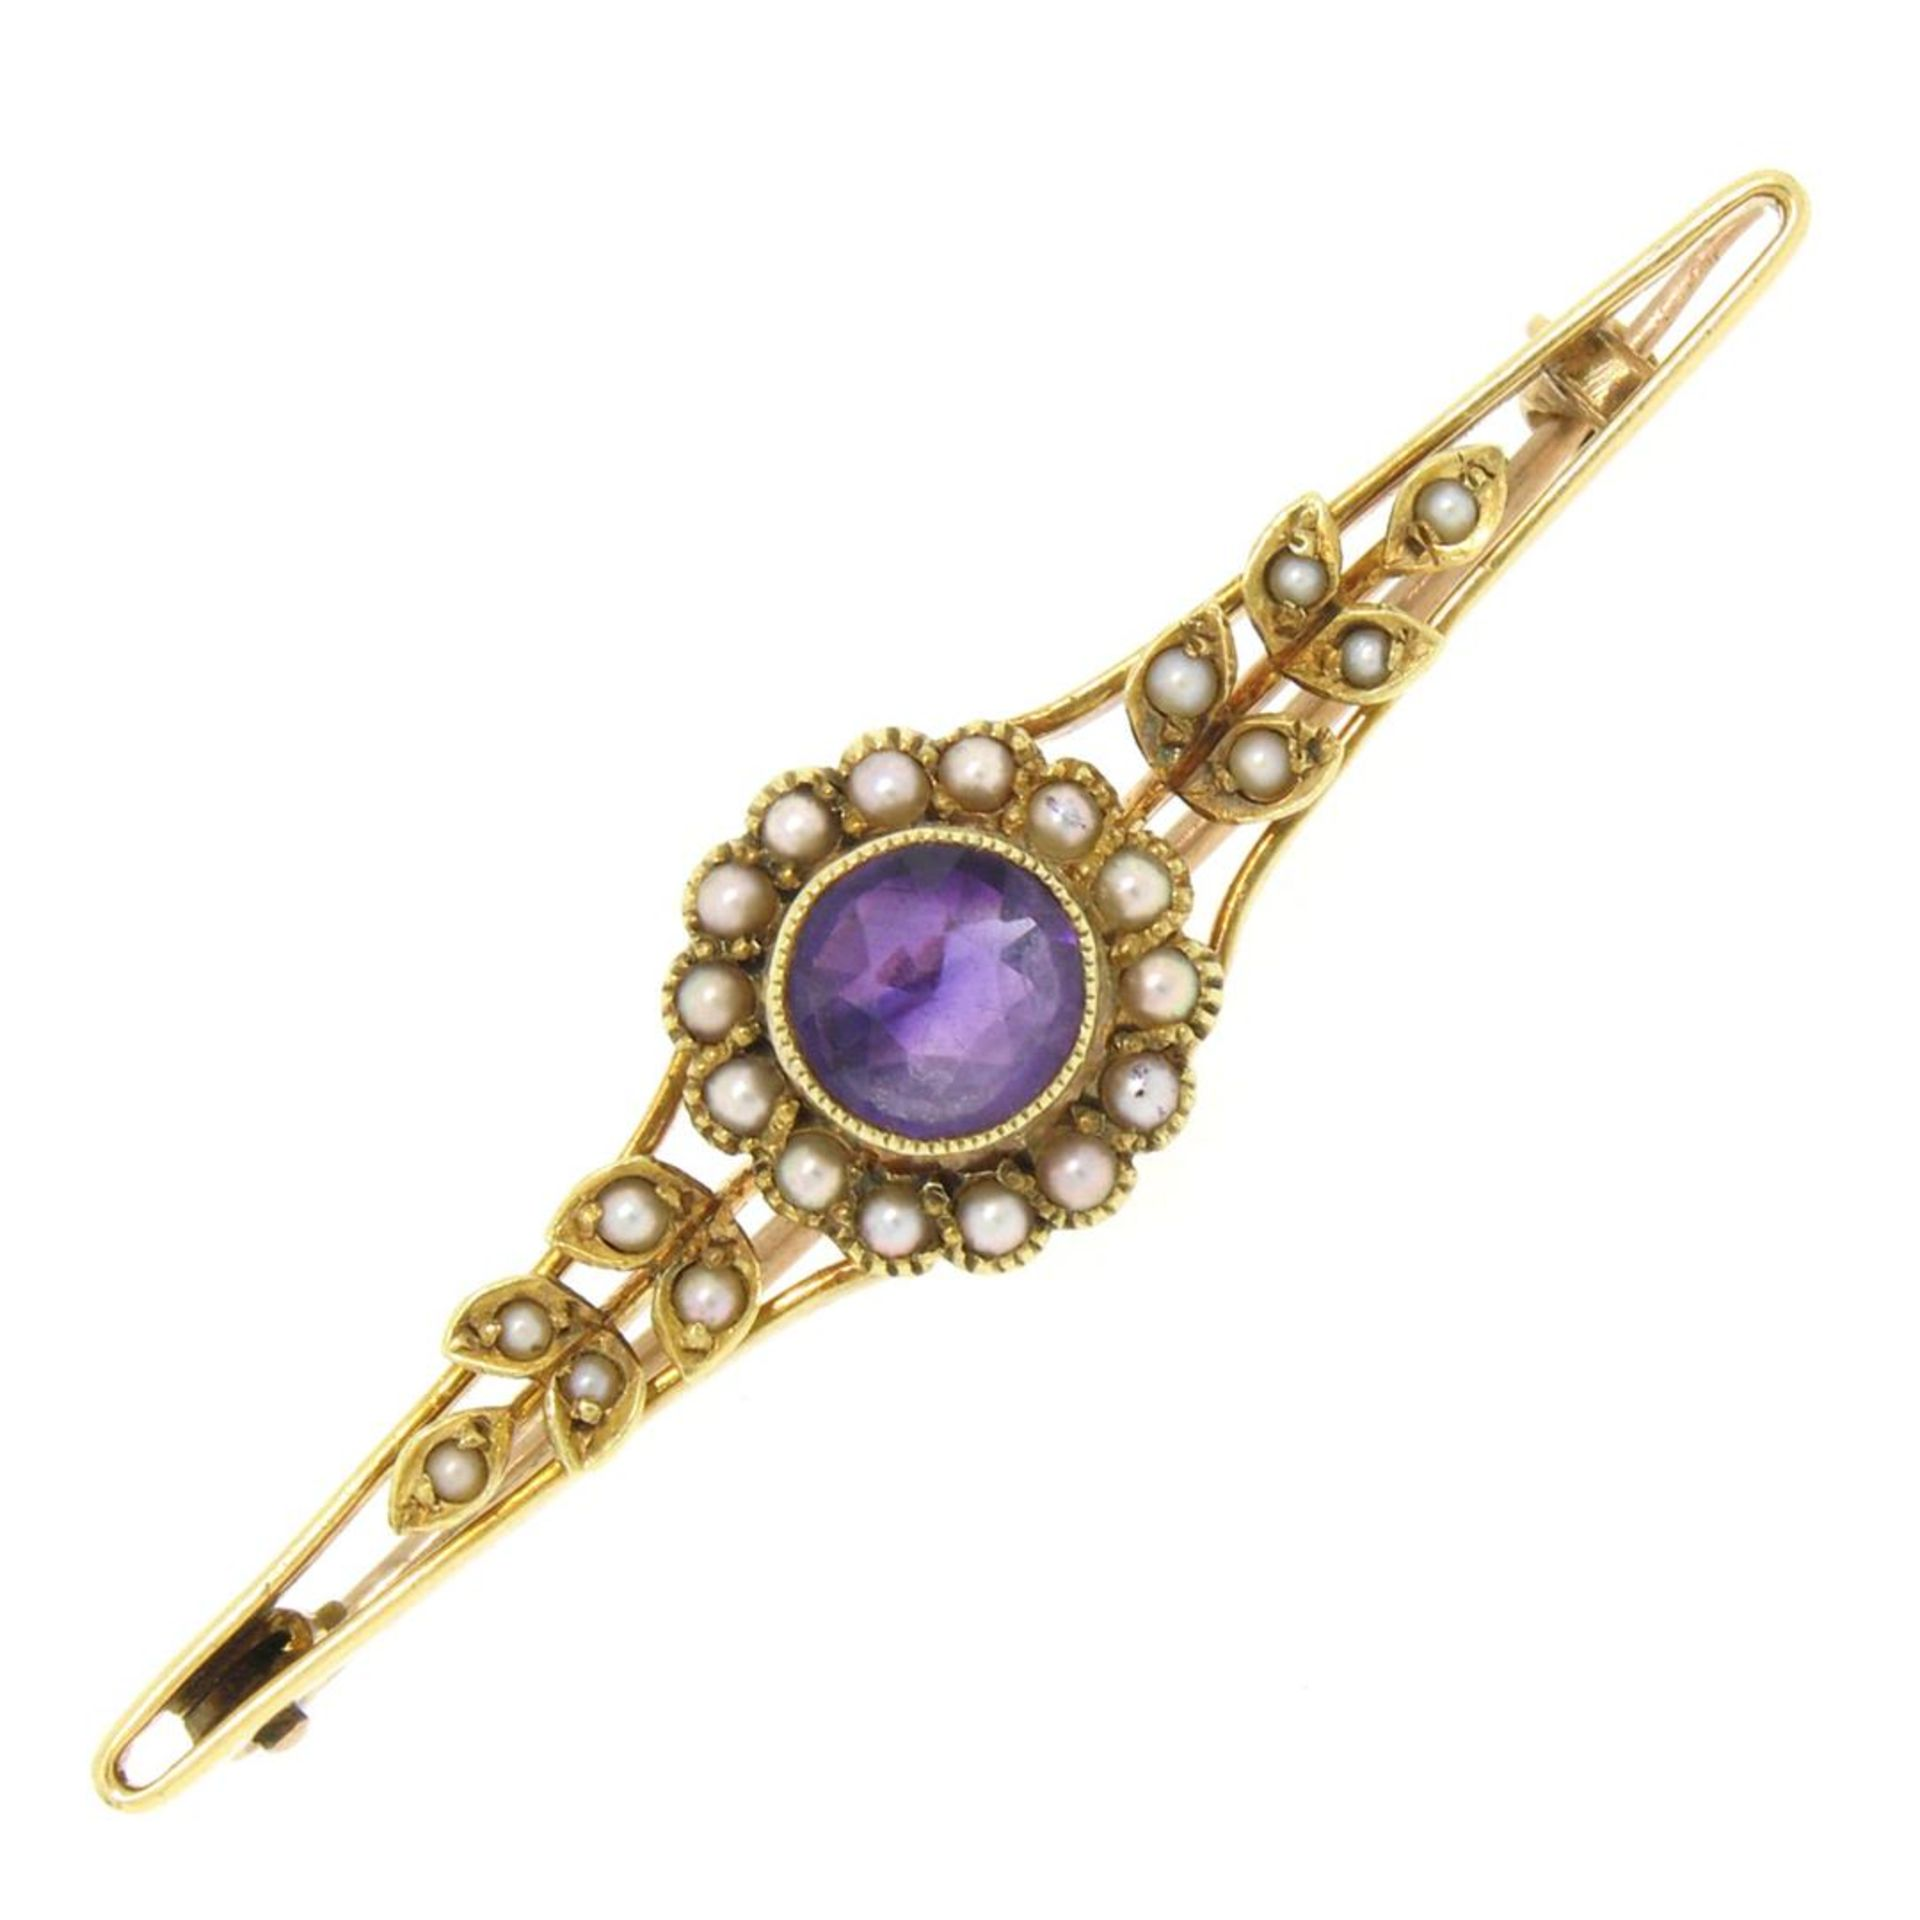 15k Yellow Gold .64 ct Old Cut Amethyst & Seed Pearl Brooch Pin